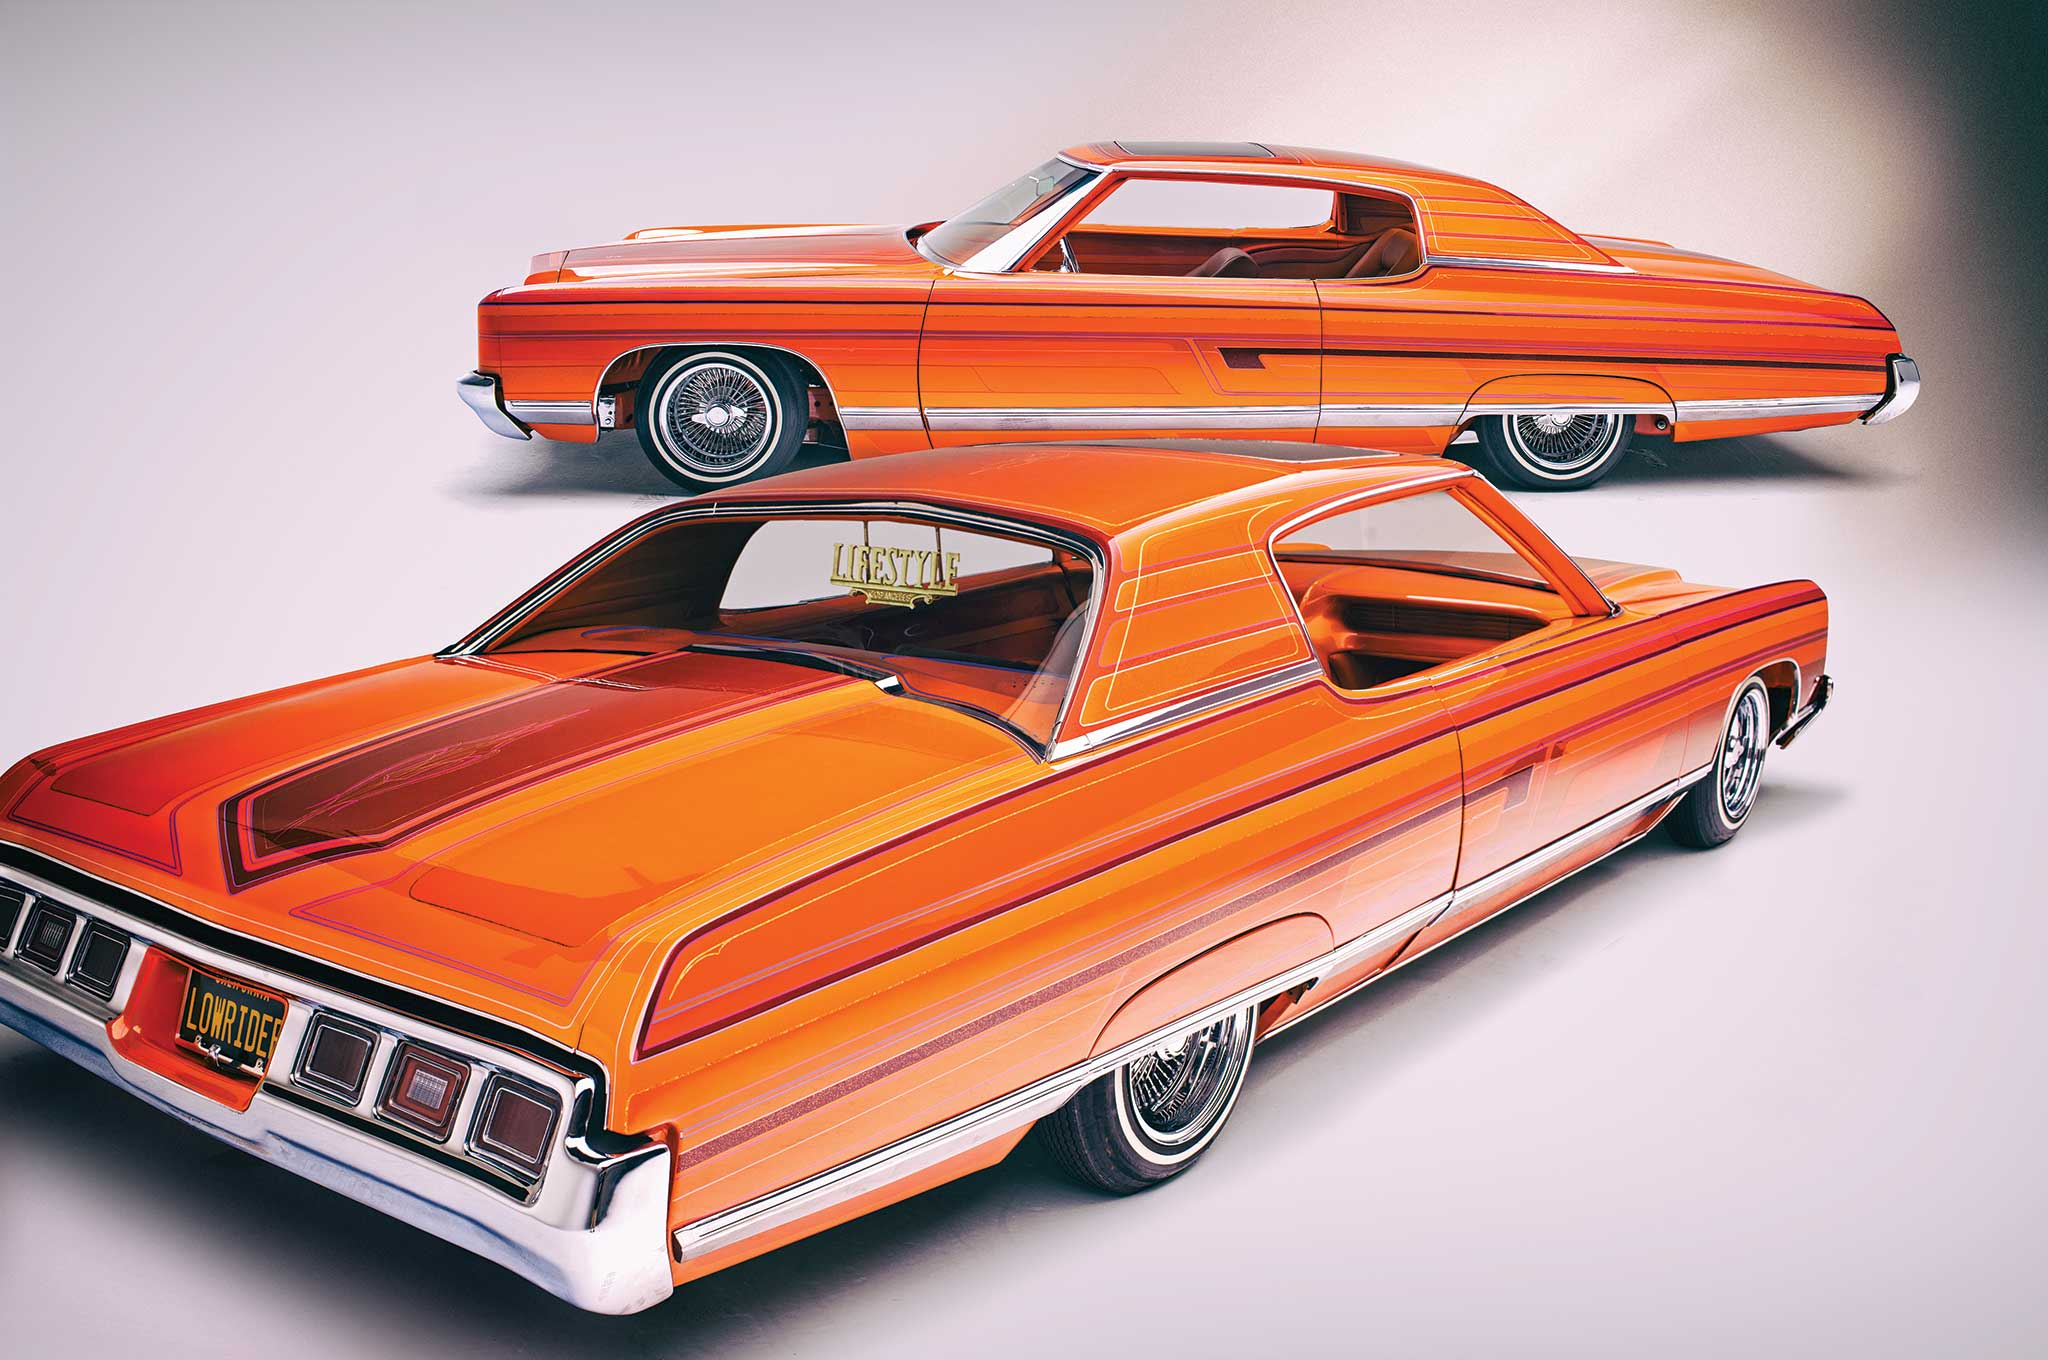 The best of both worlds—a '72 Caprice with a '73 rear bumper.